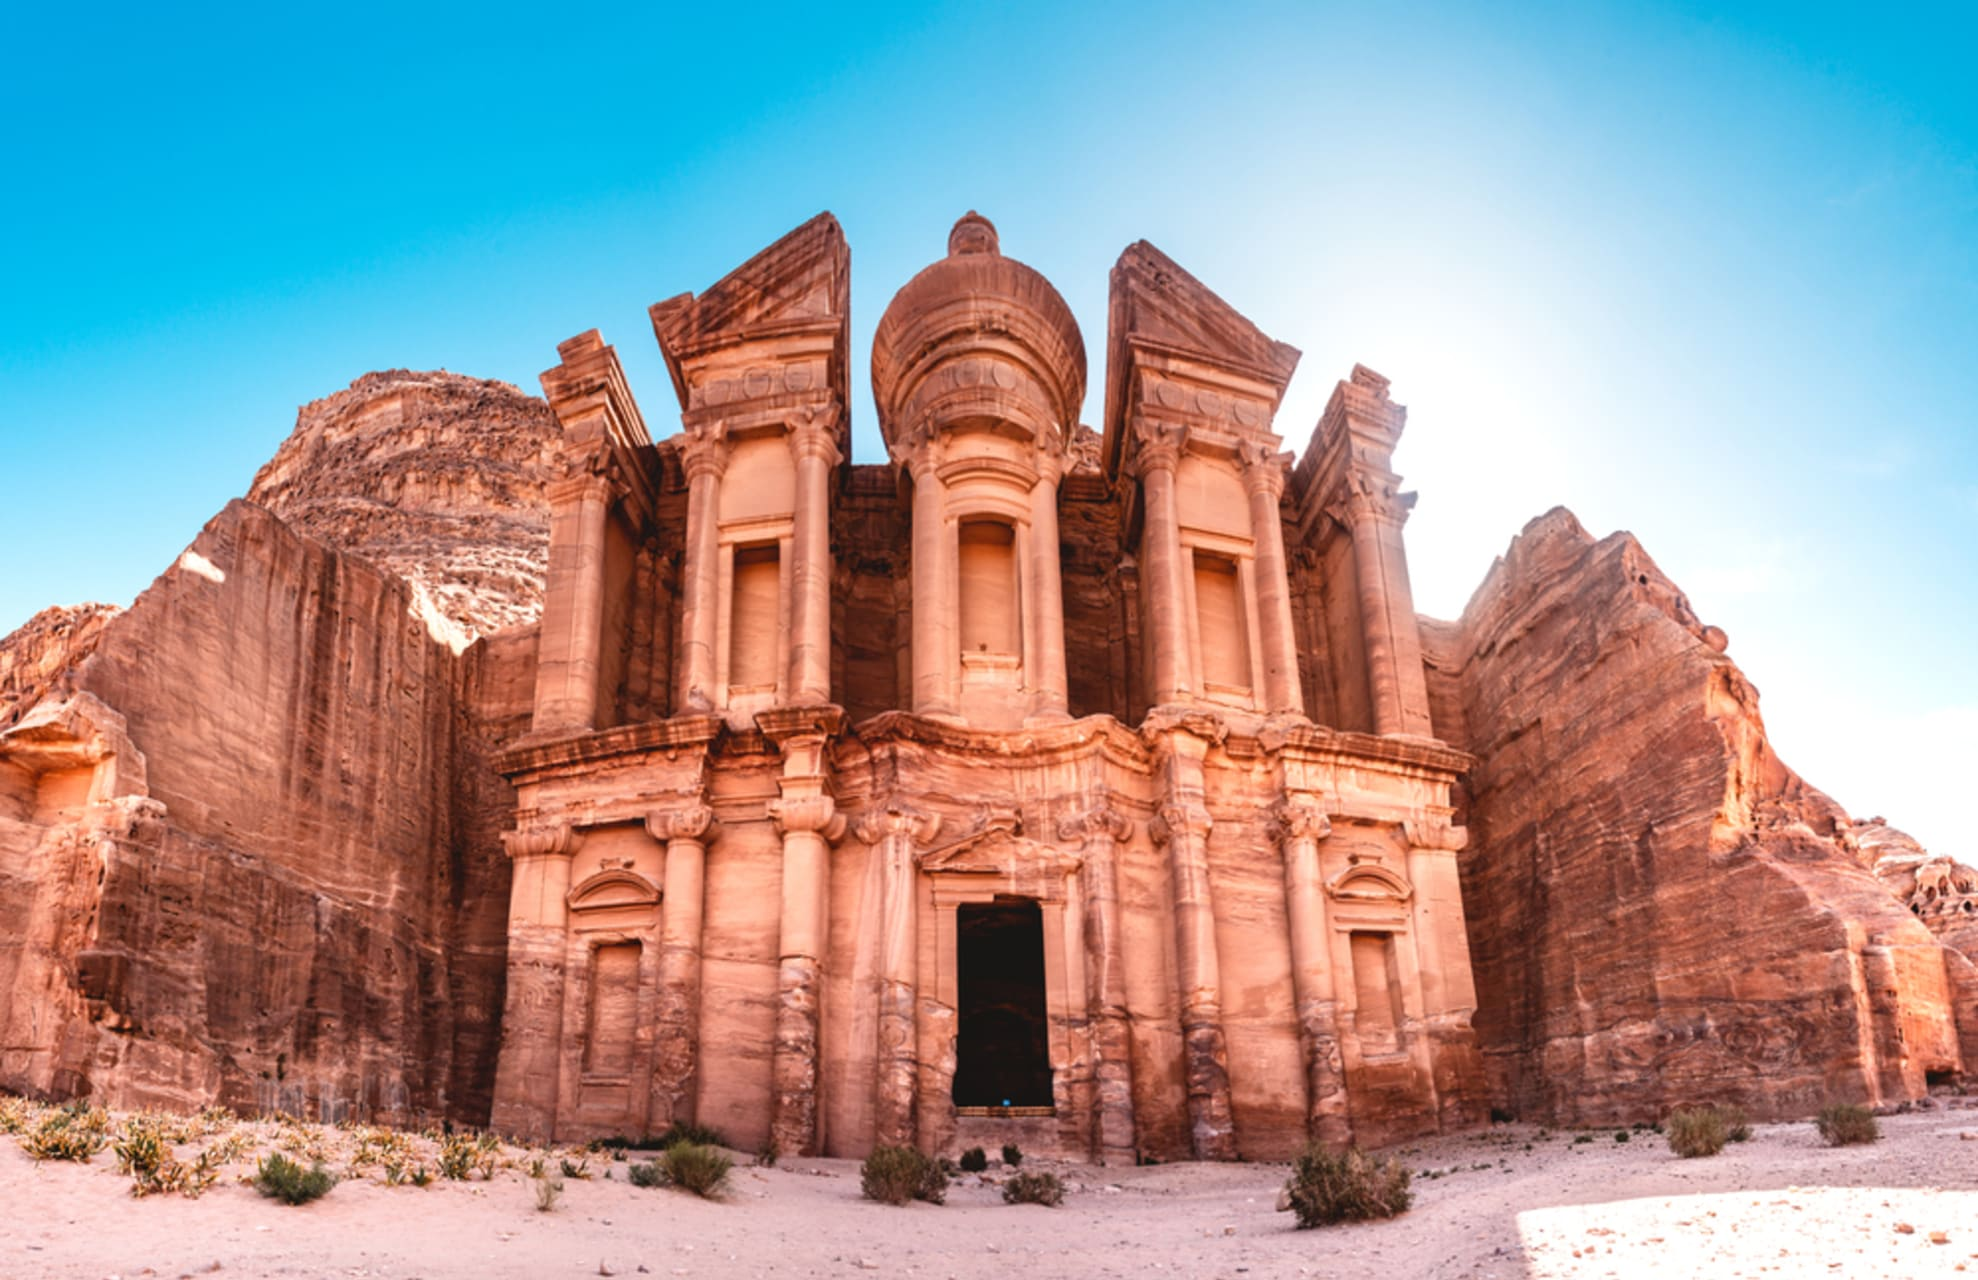 Petra - Petra, One of the 7 Wonders - Trail III